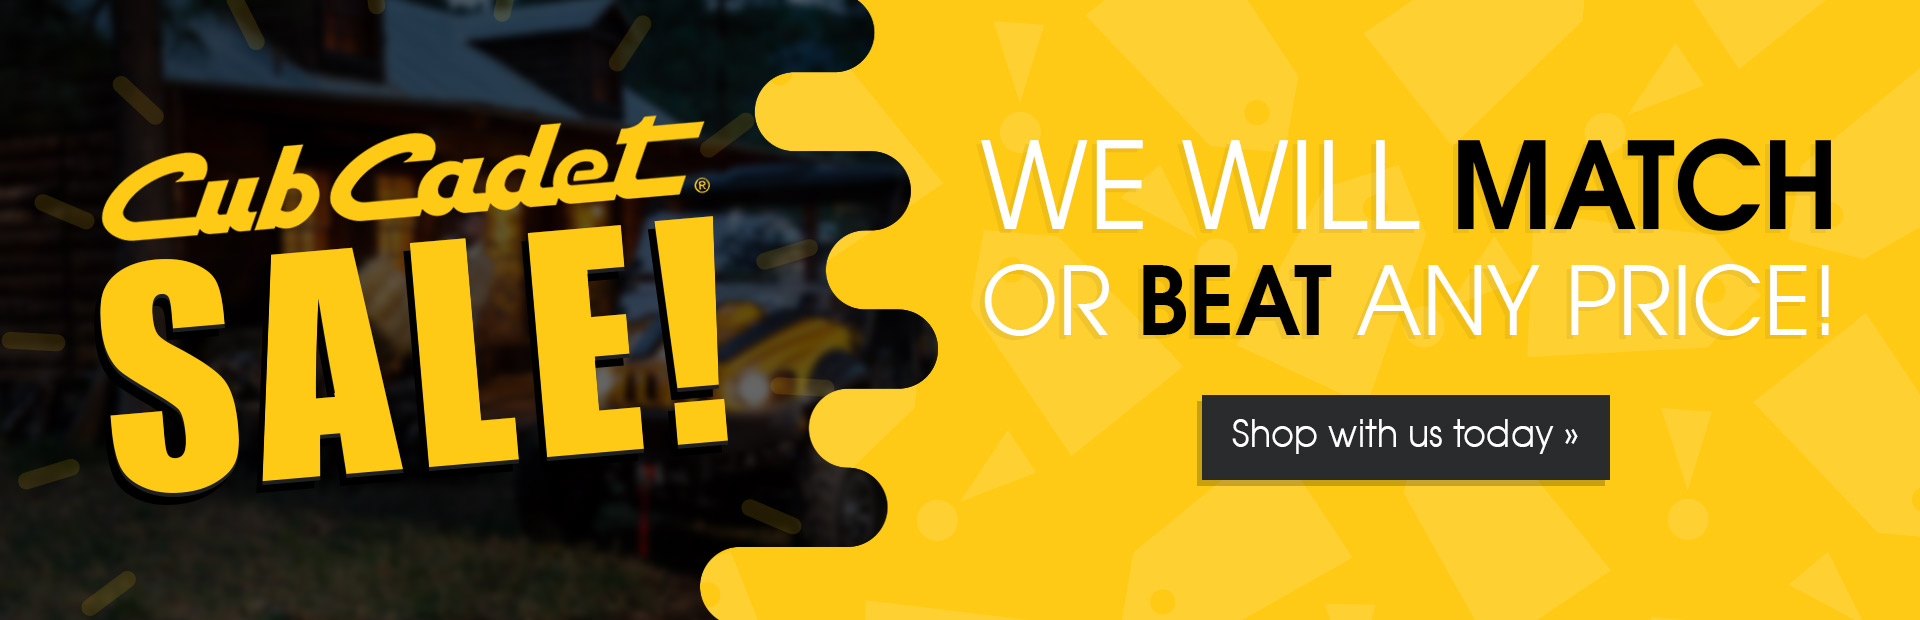 Cub Cadet Sale: We will match or beat any price! Shop with us today.